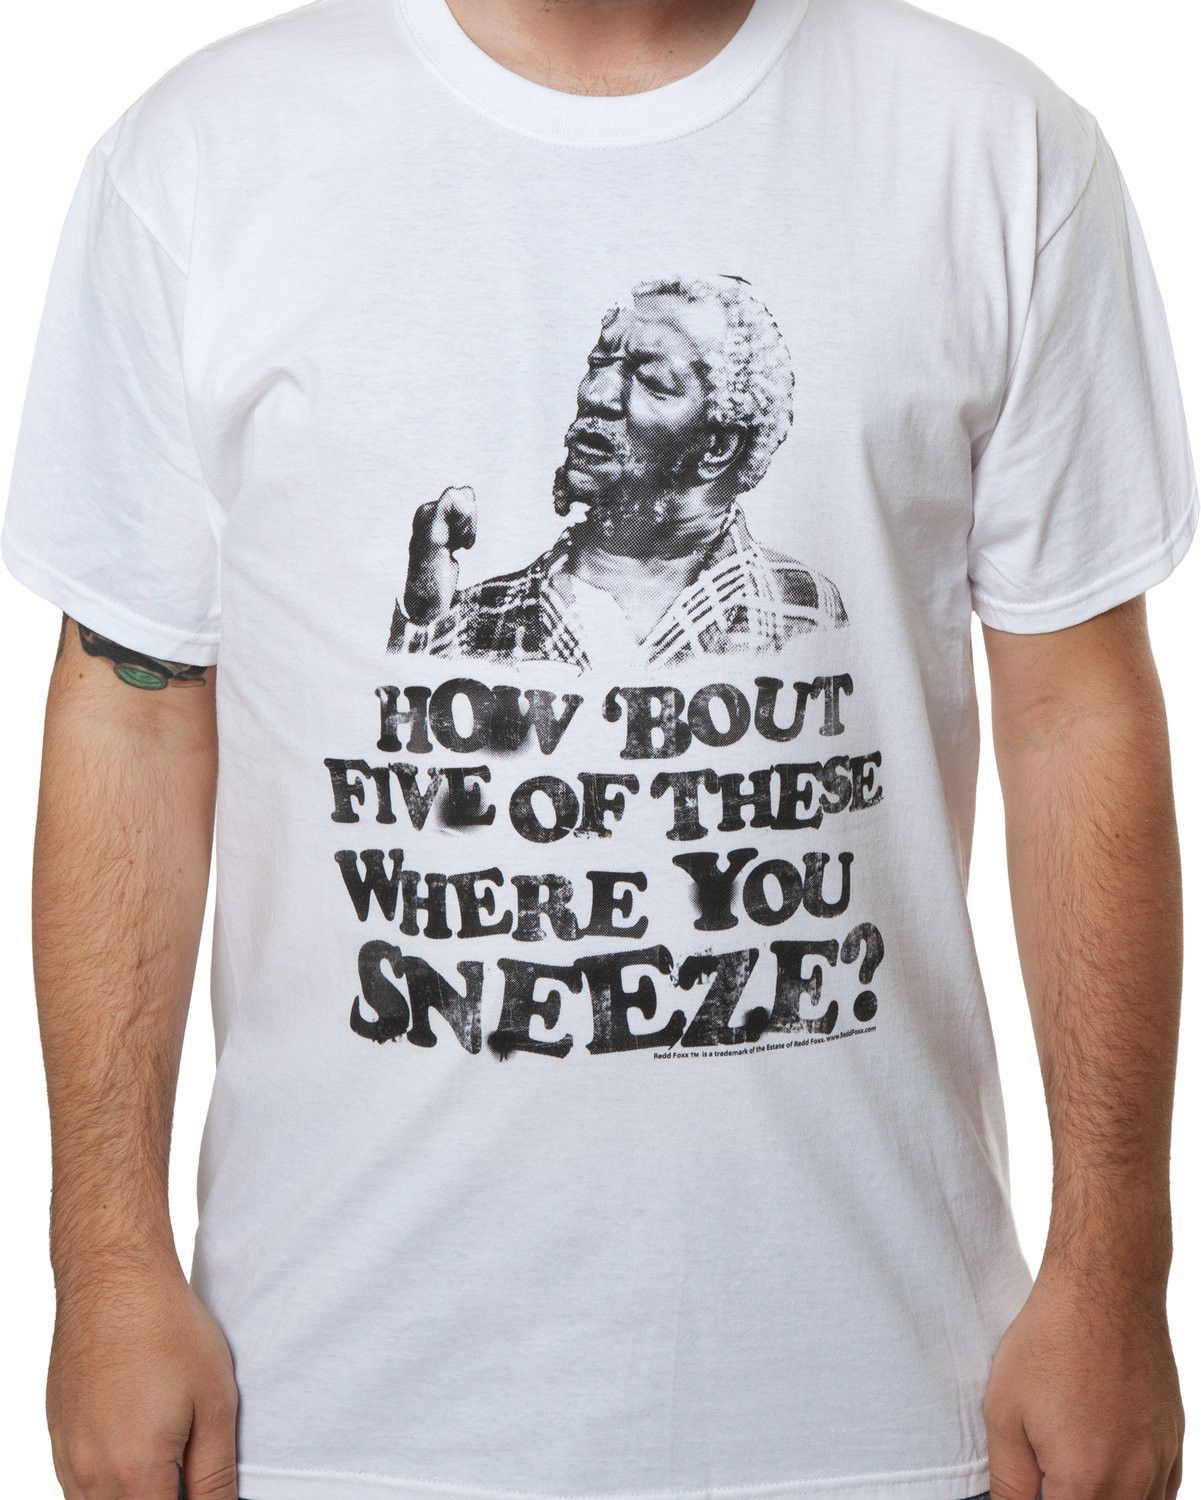 Sanford /& Son Funny TV Show How Bout 5 Of These Where You Sneeze Adult T Shirt